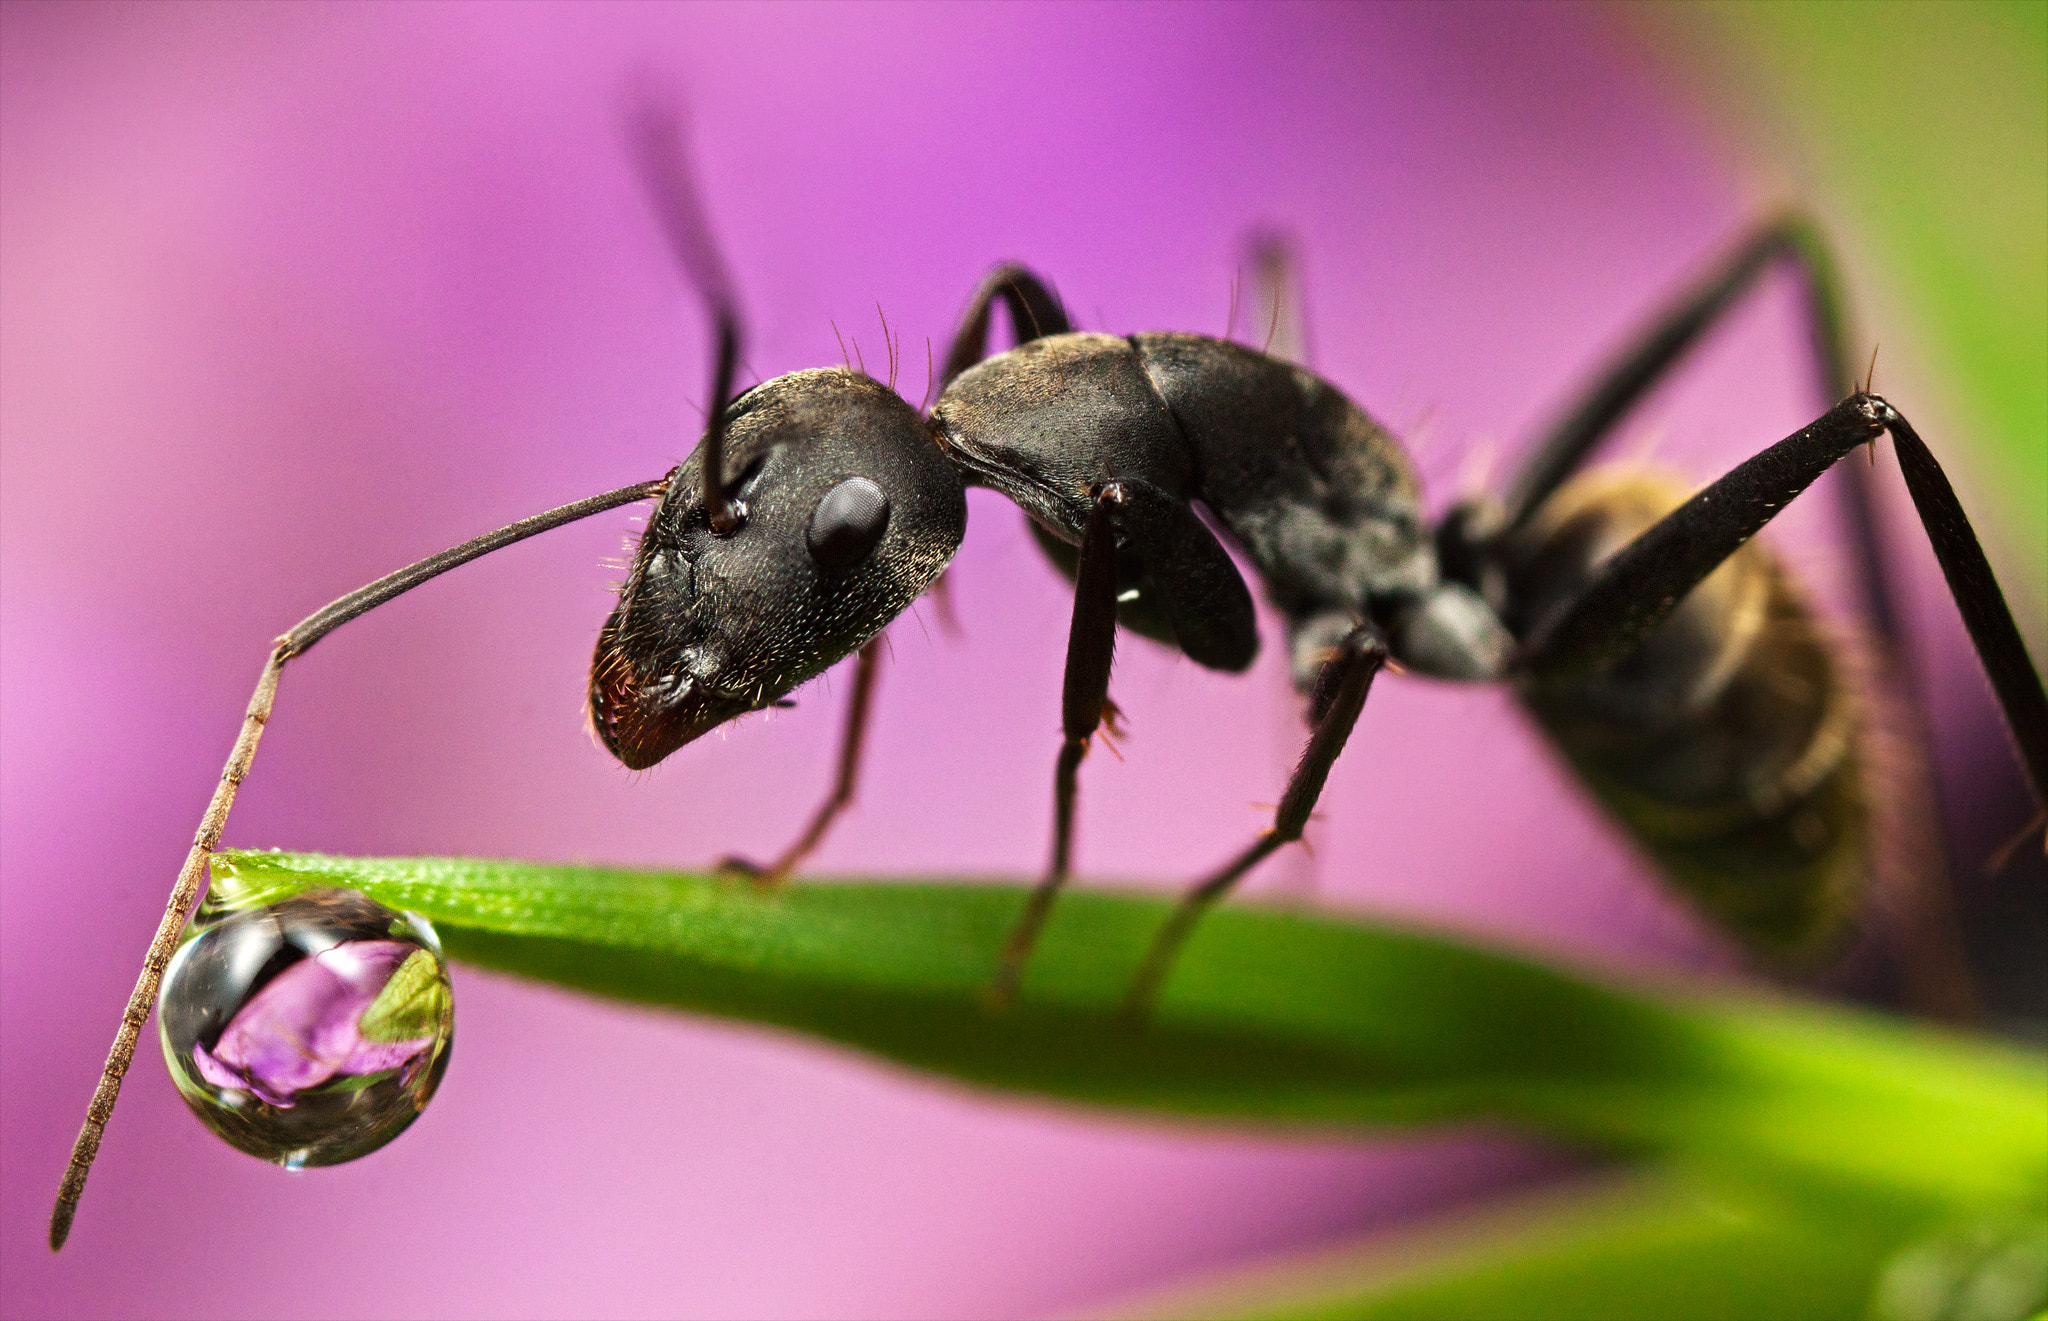 Photograph Ant peers into droplet by John Cogan on 500px